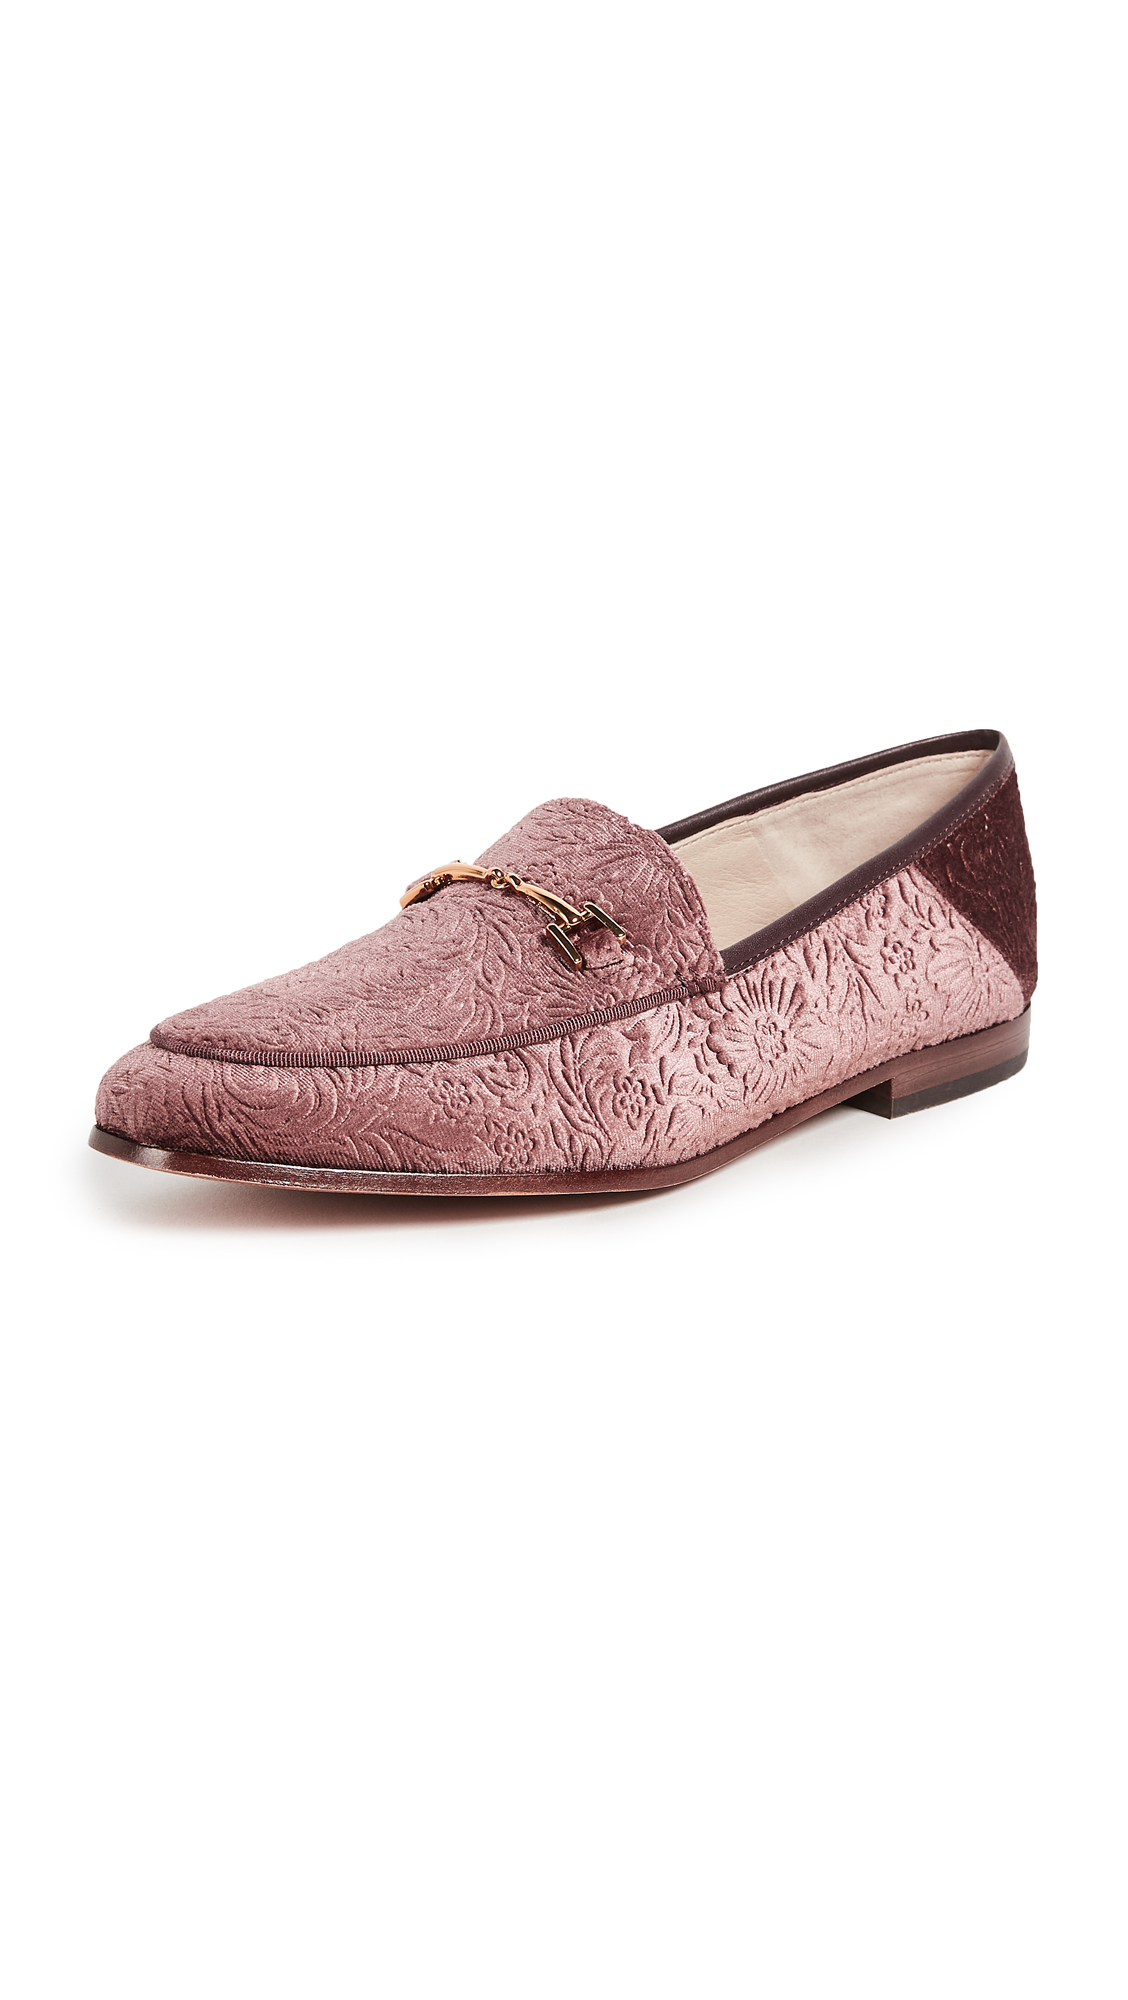 Sam Edelman Loraine Loafers - Mauve Wine